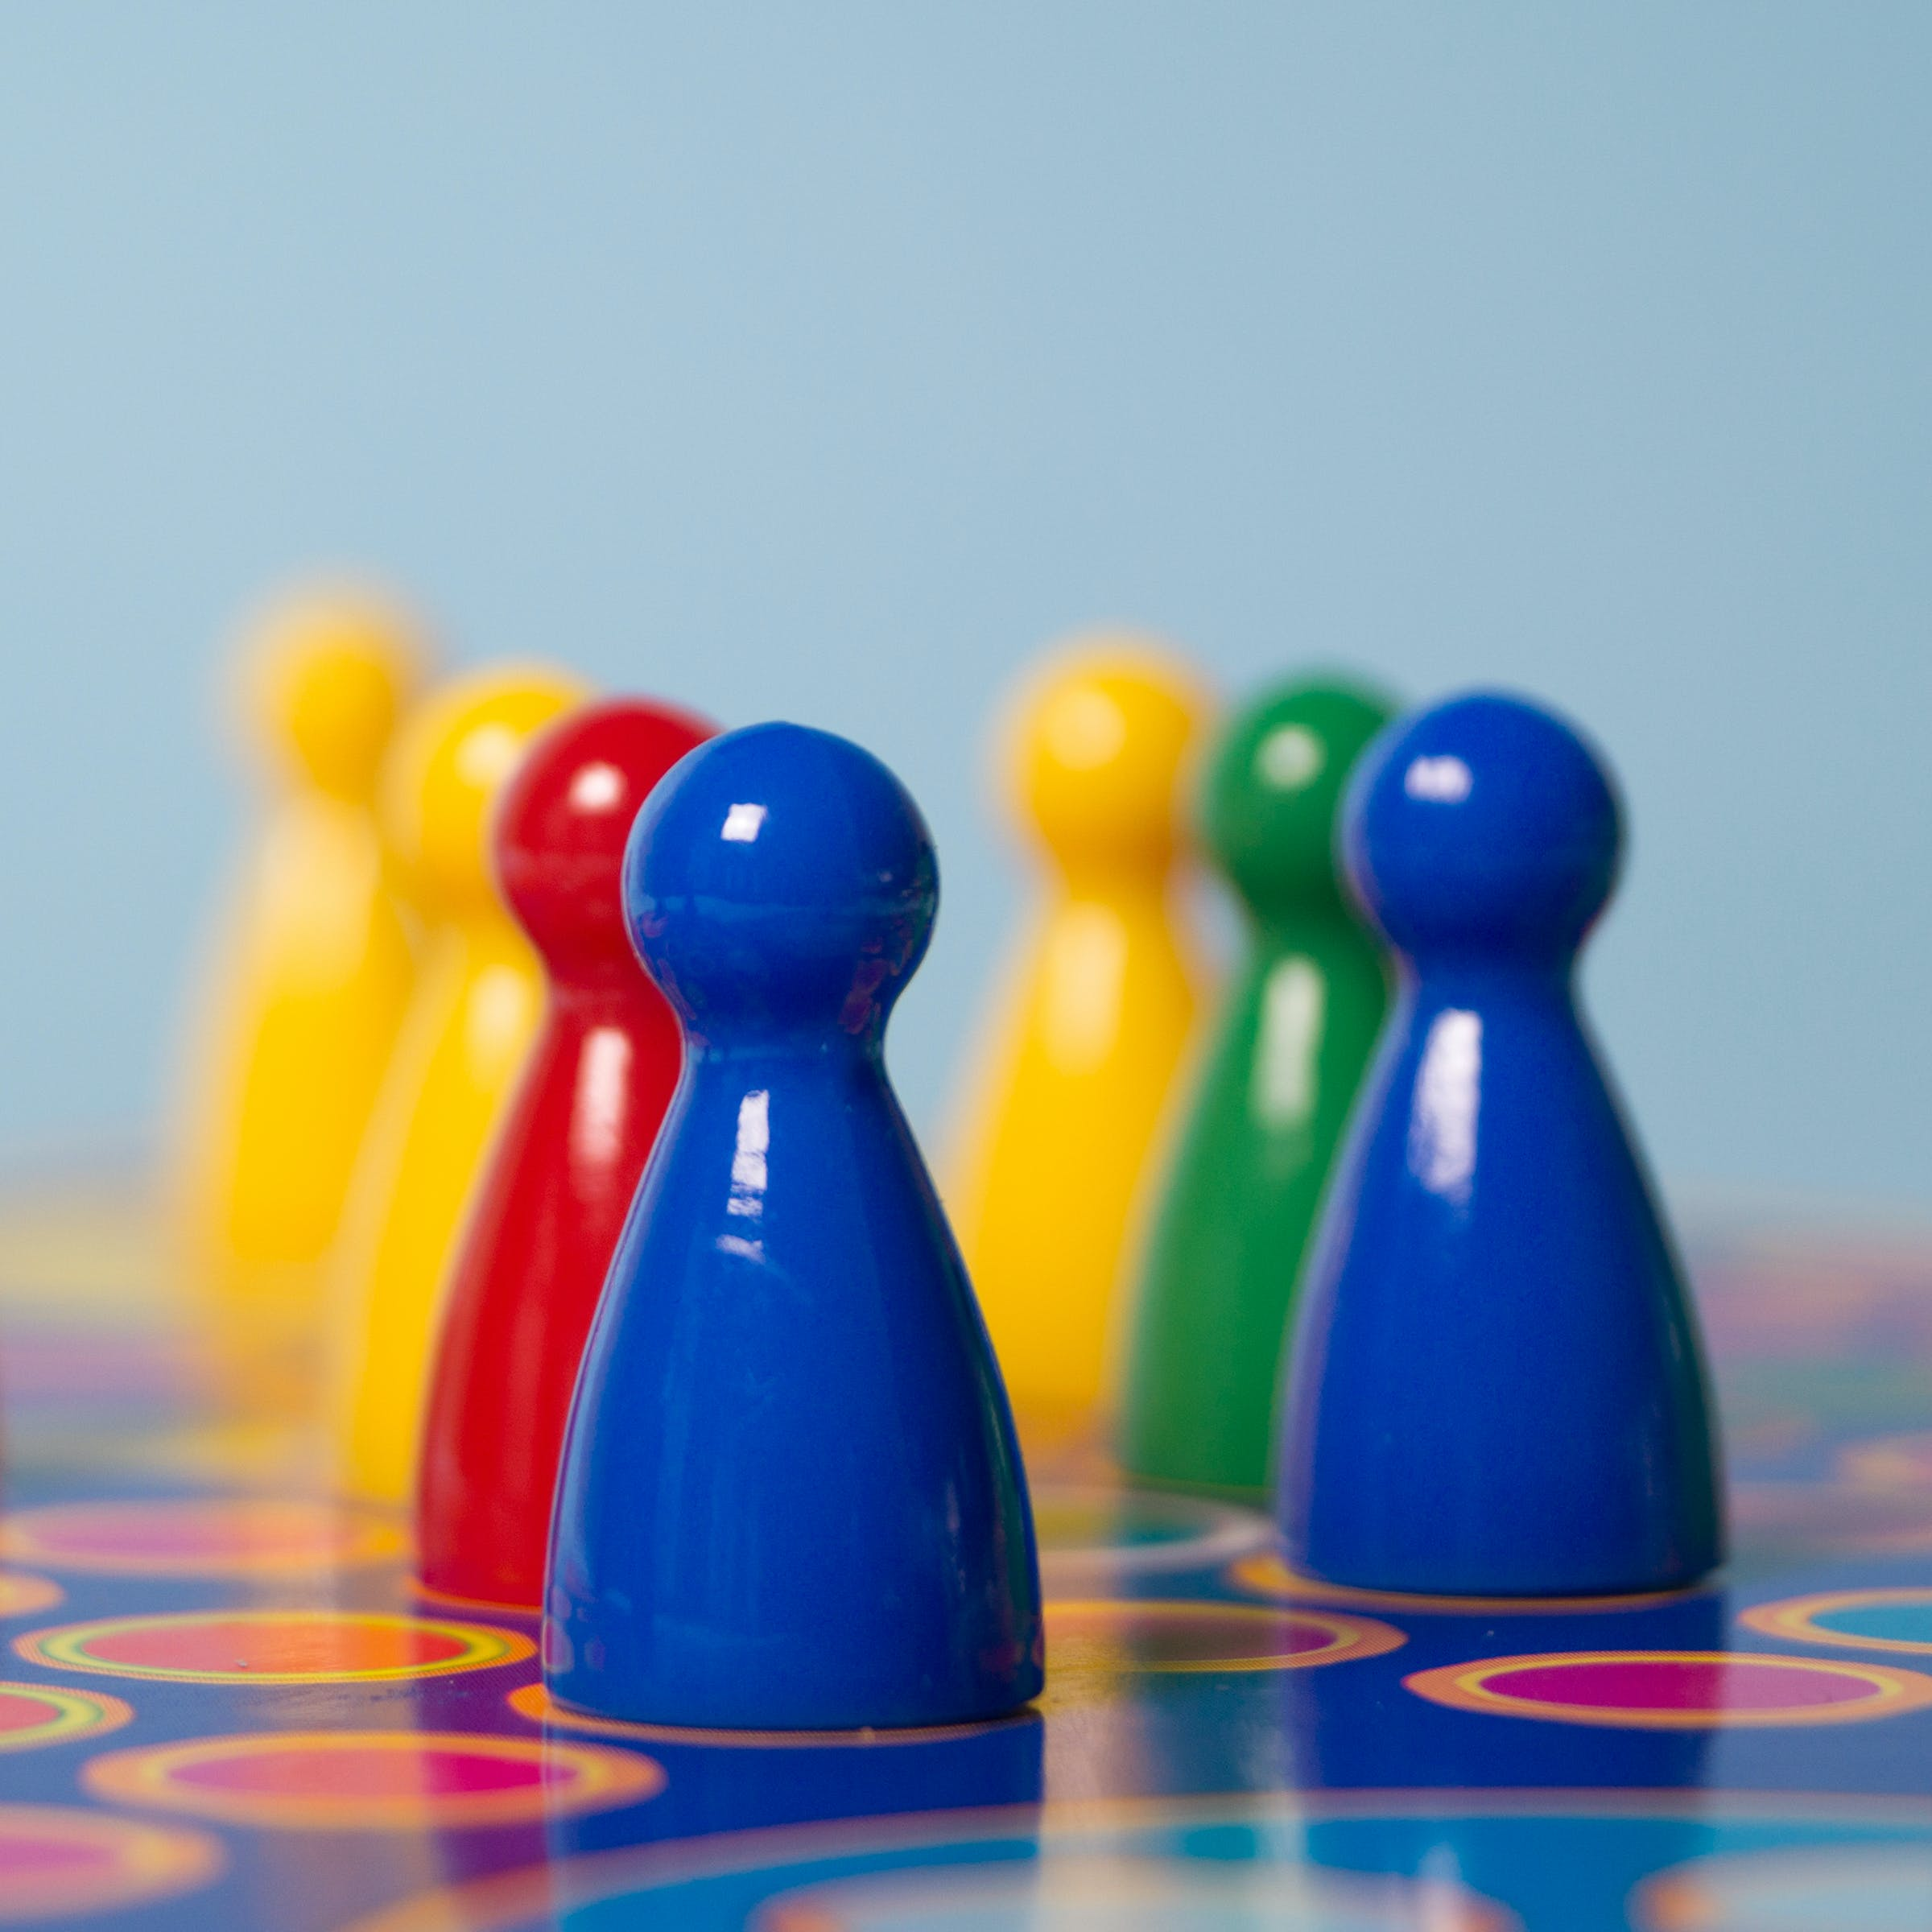 Closeup Photography of Yellow, Red, Green, and Blue Chess Piece